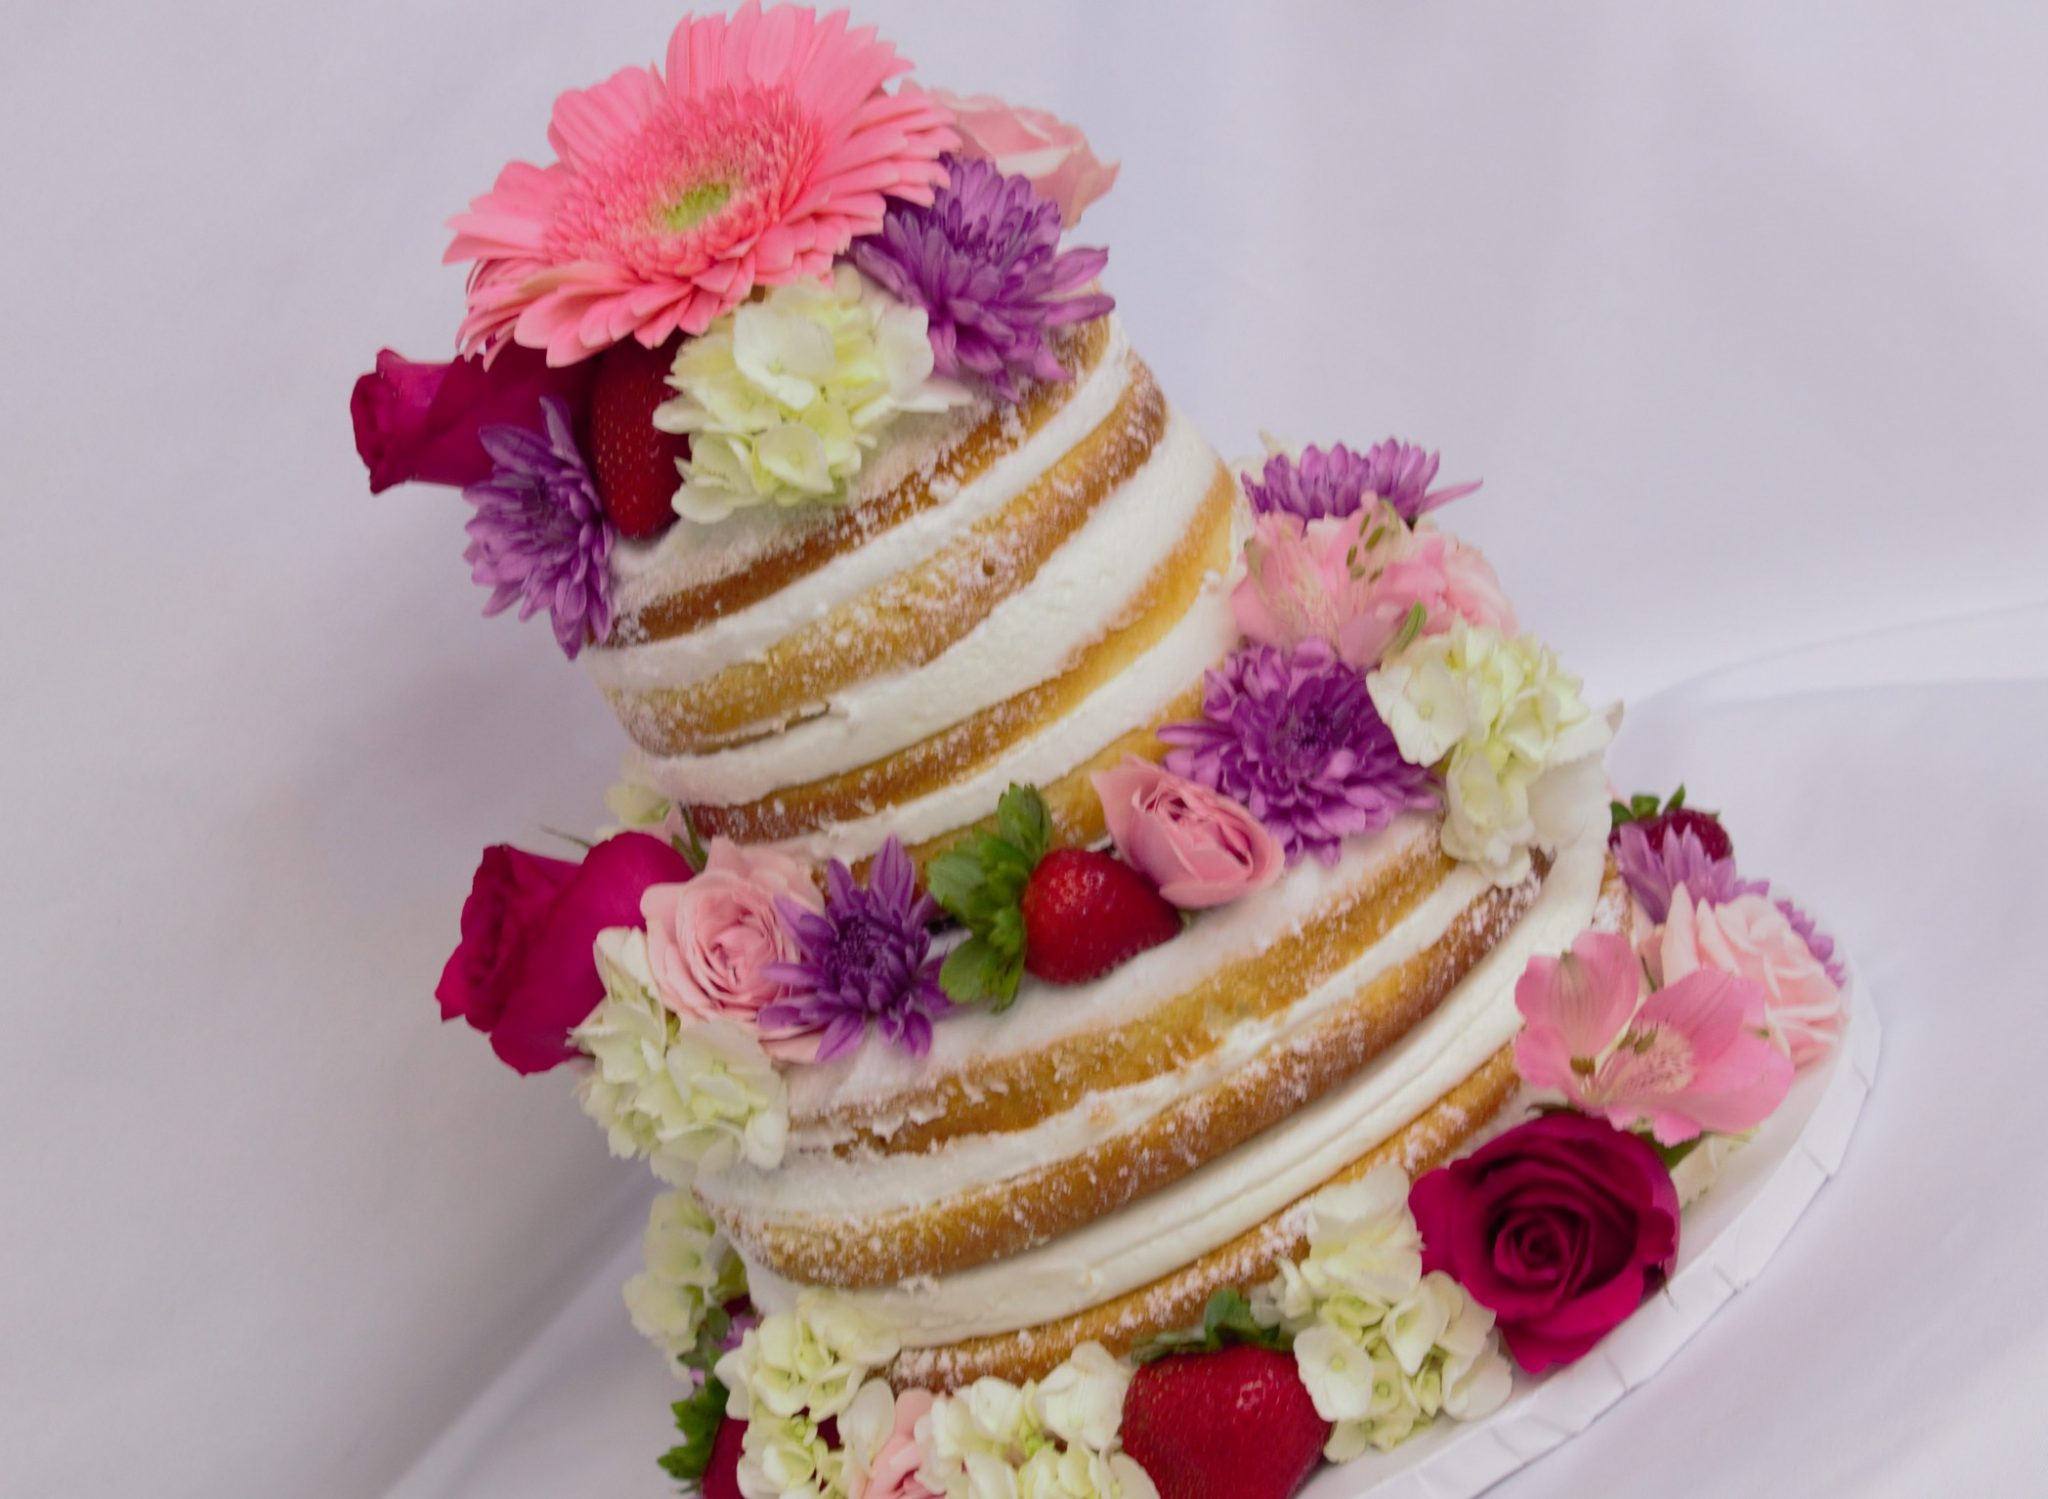 Naked cake with flowers a trendy cake from cinottis bakery naked cake with flowers mightylinksfo